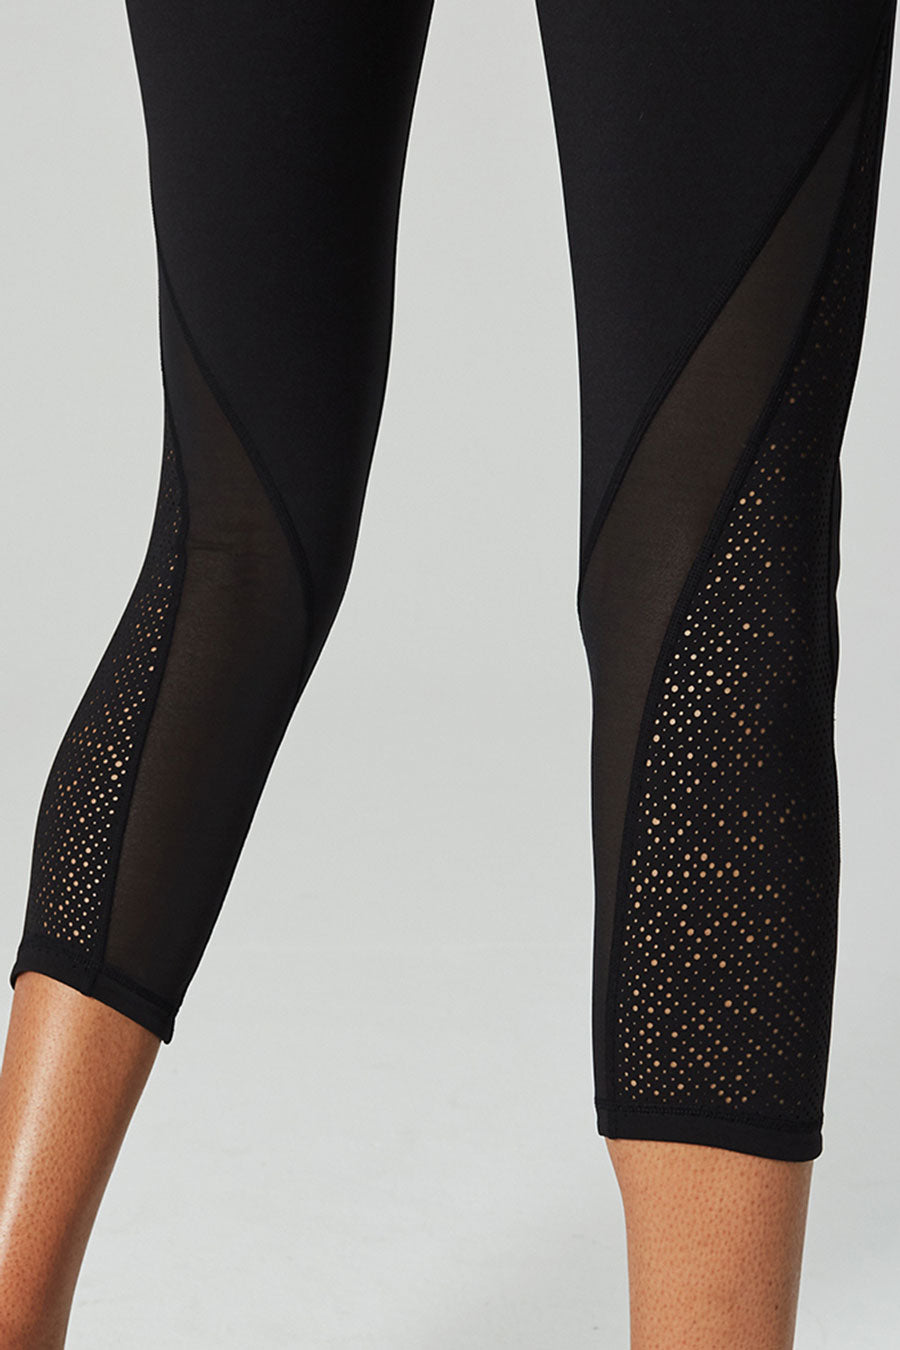 Varley Corbett Tight - Sculptique